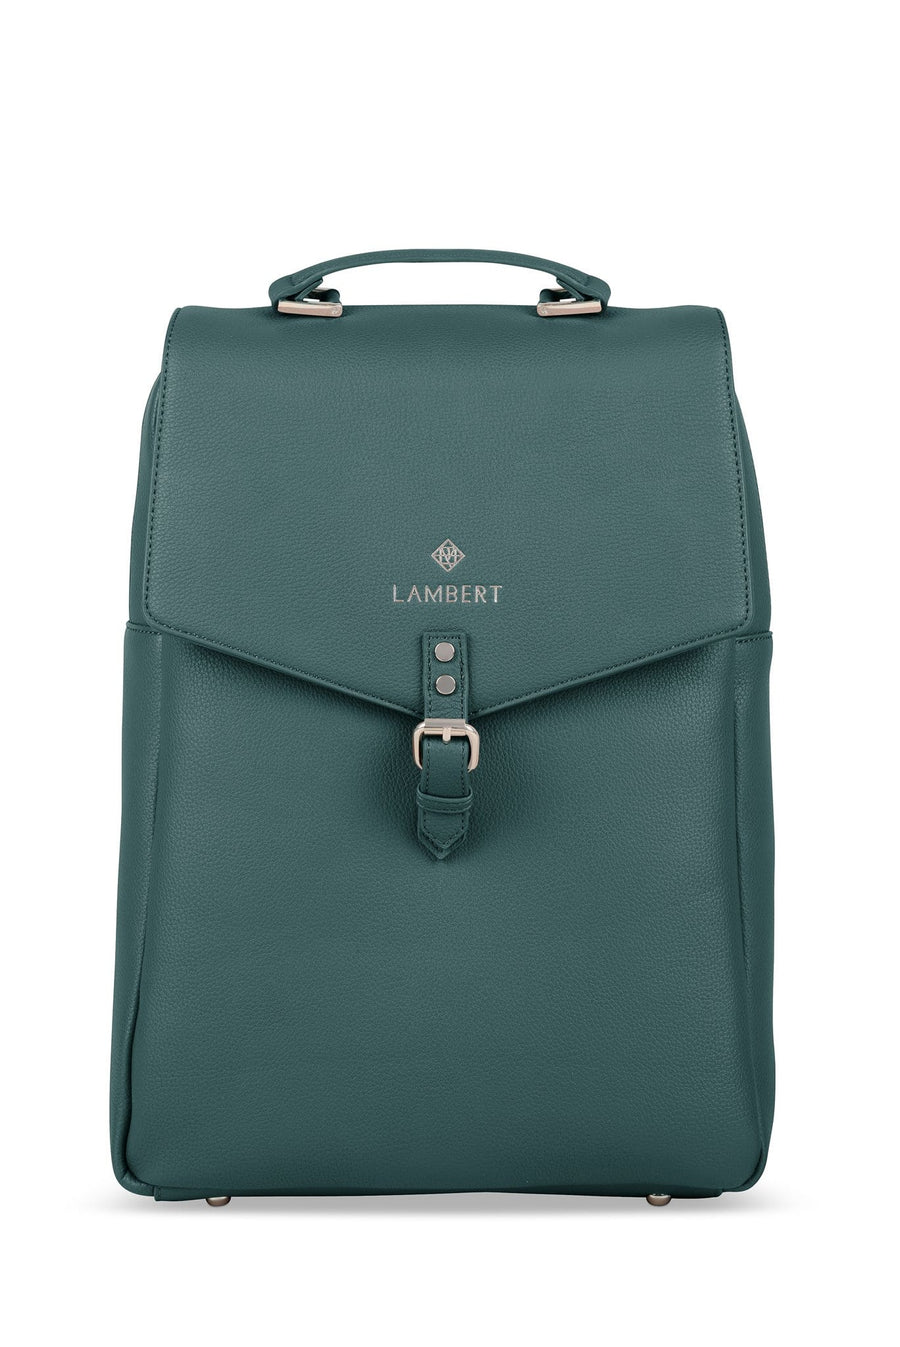 JADE - Our Leather Backpack for Women